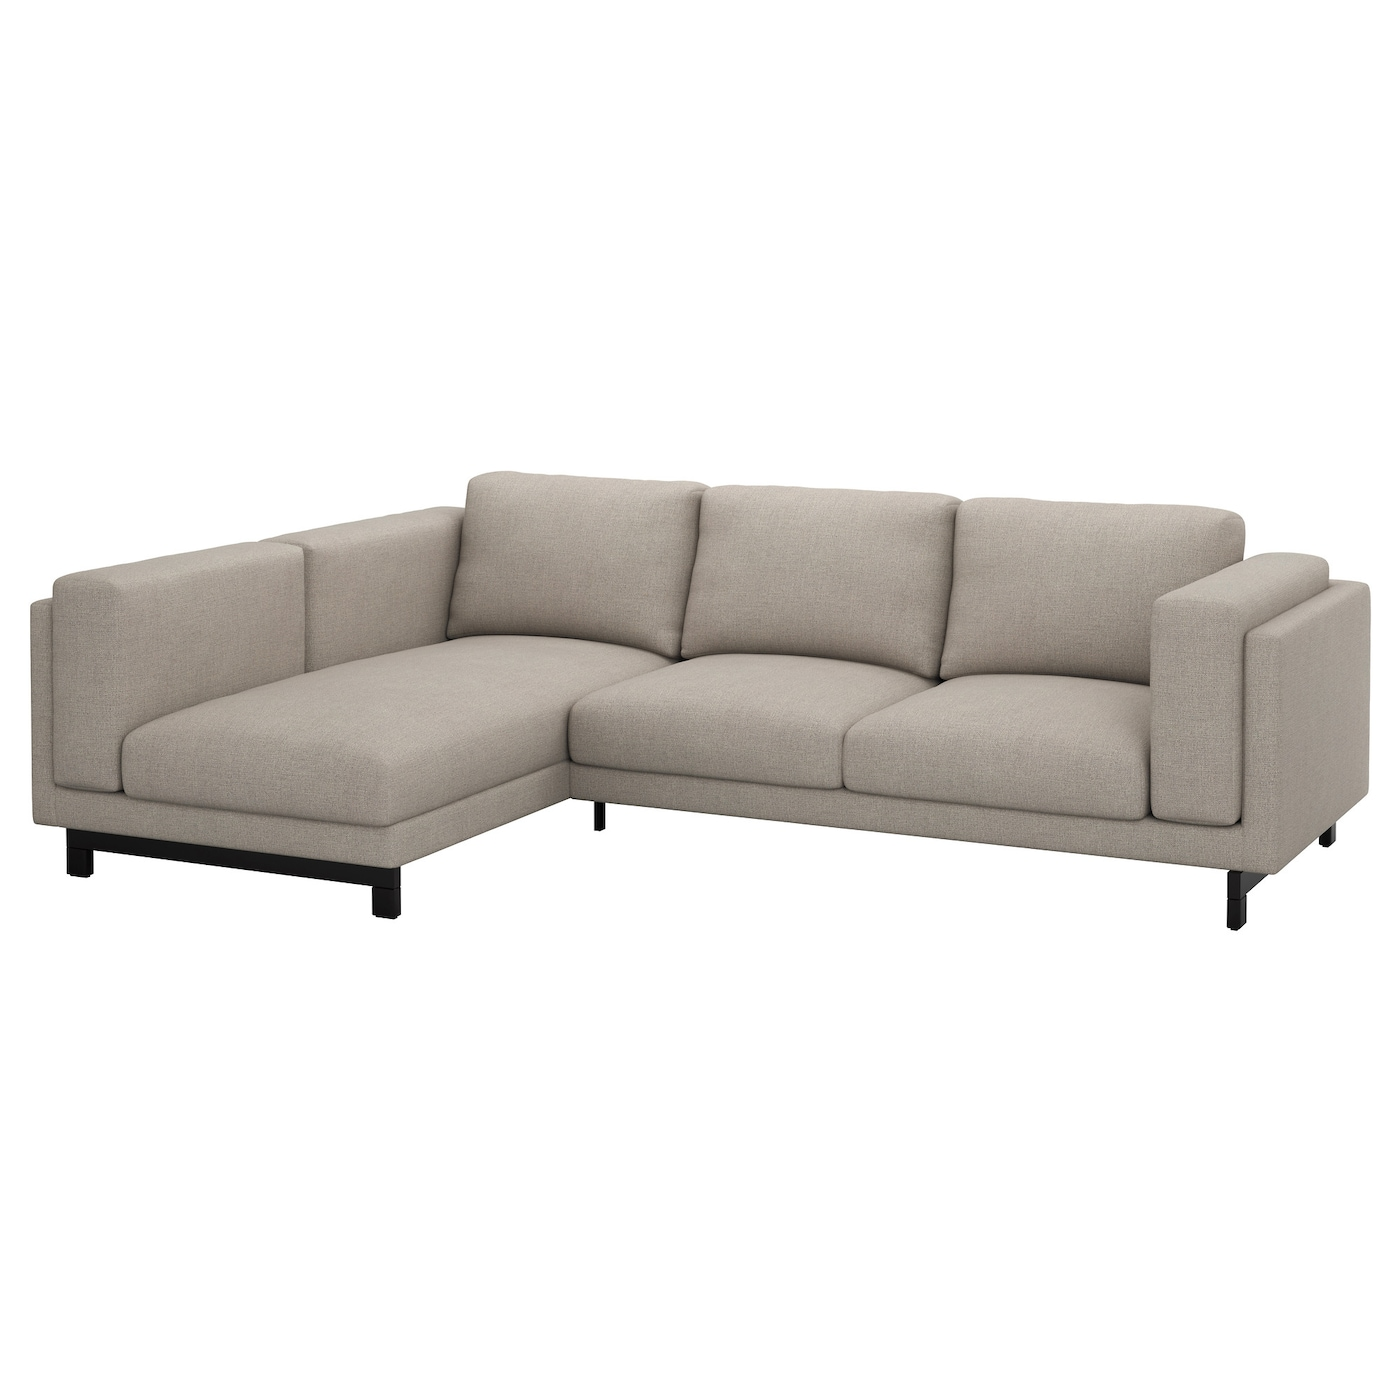 IKEA NOCKEBY 3-seat sofa Heavy, hard-wearing fabric with structure, yarn dyed in different shades.